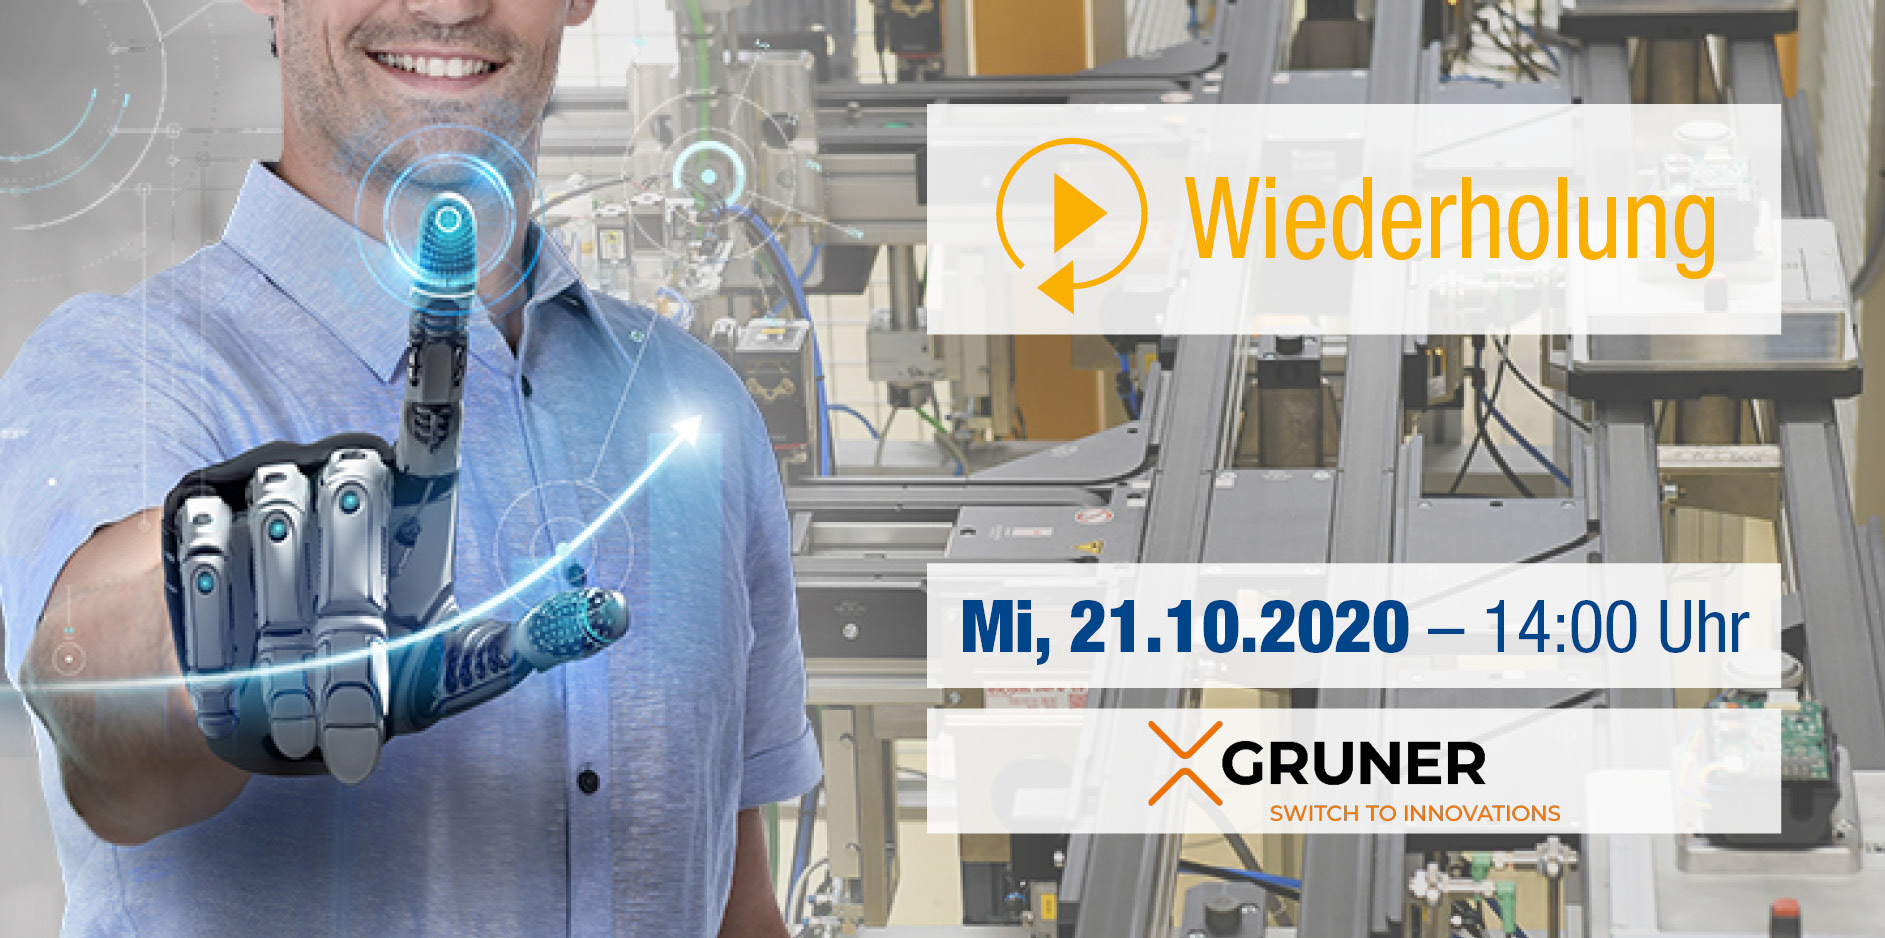 Innovation@Work Webinar Gruner | IGZ